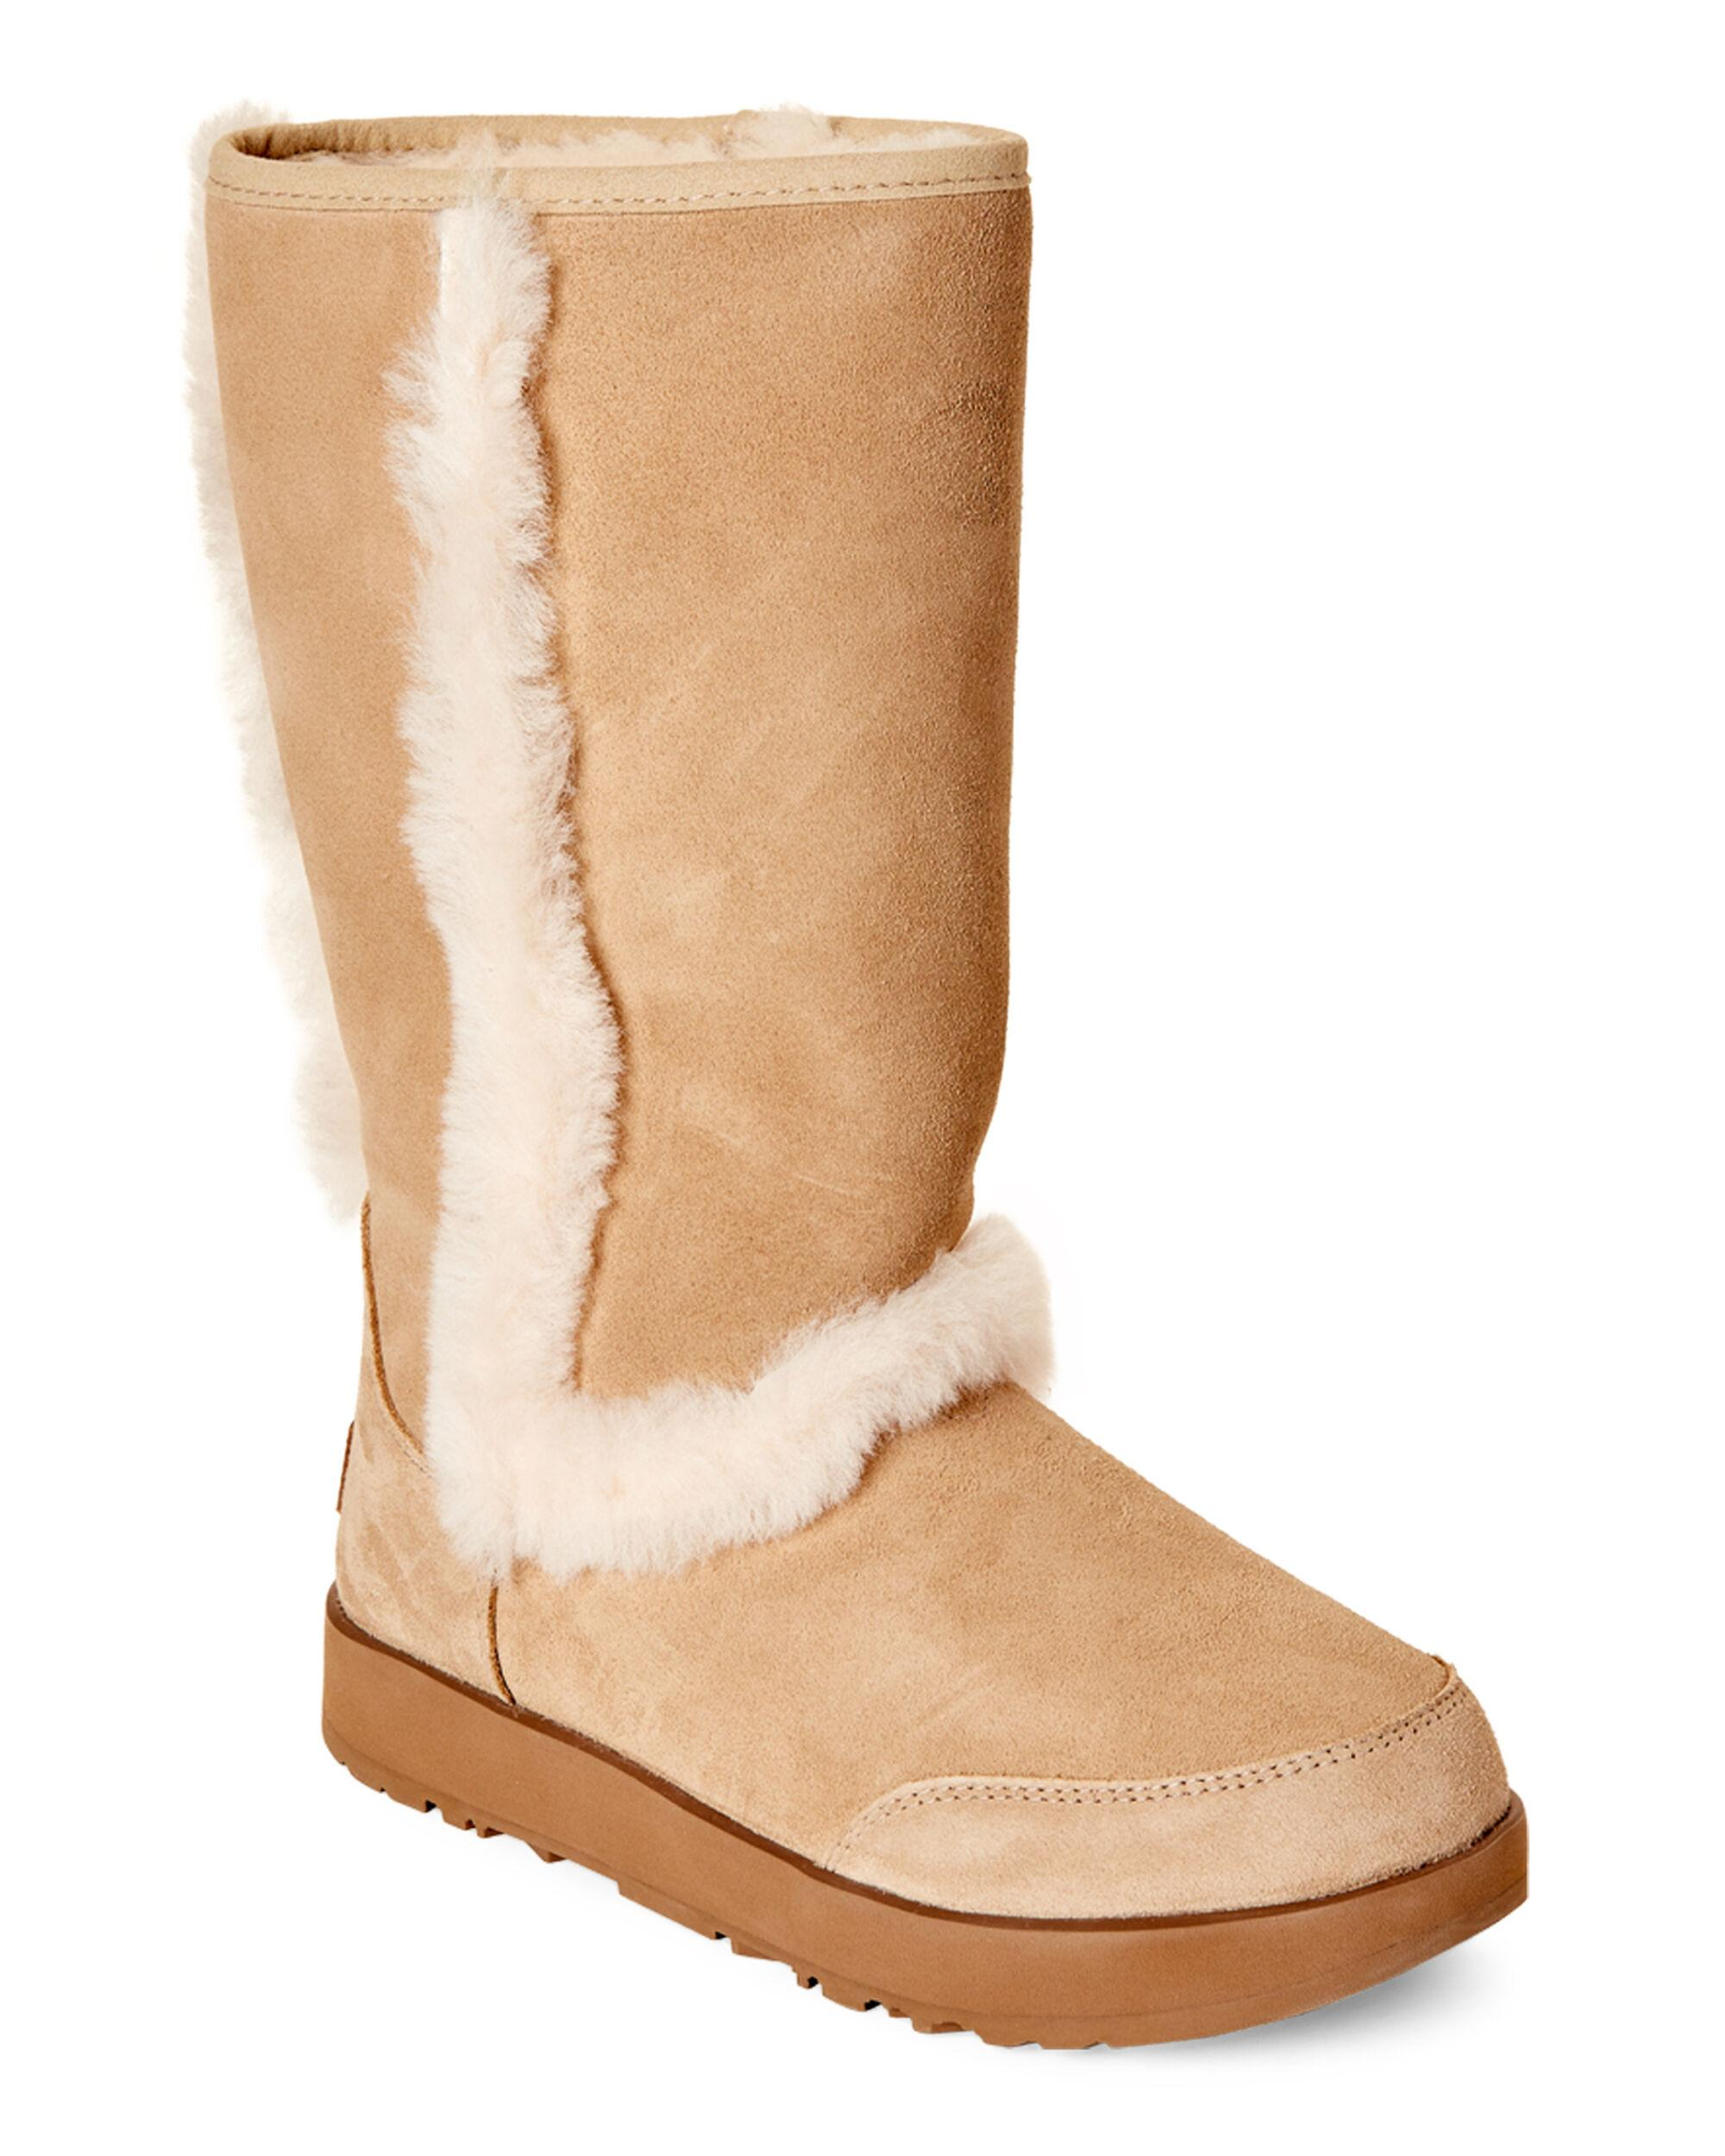 6f0c98af68e UGG Sand Sundance Waterproof Real Fur Boots in Natural - Lyst